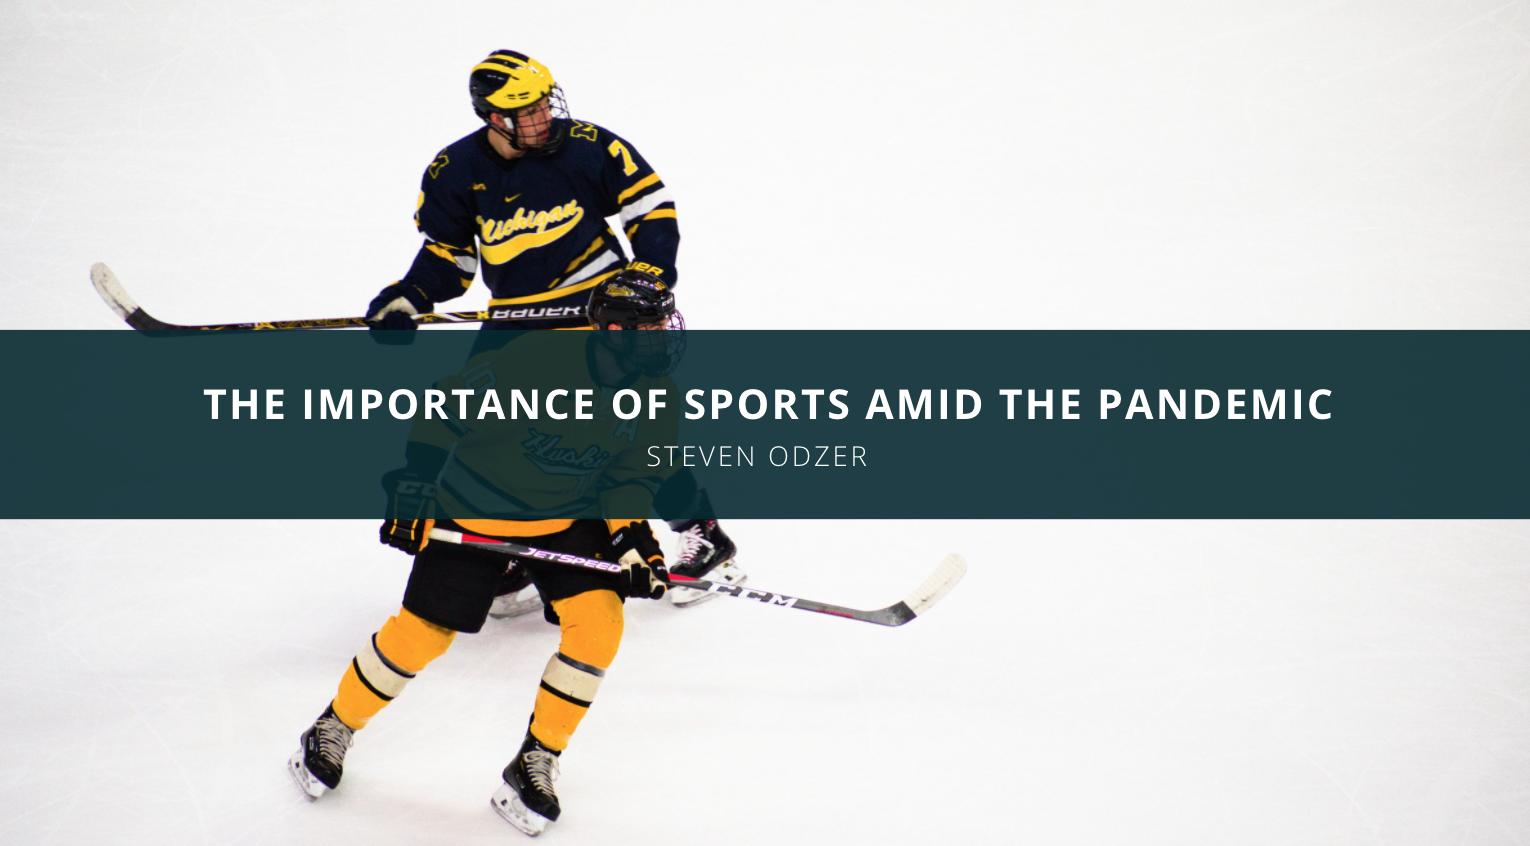 Steven Odzer Discusses The Importance of Sports Amid The Pandemic